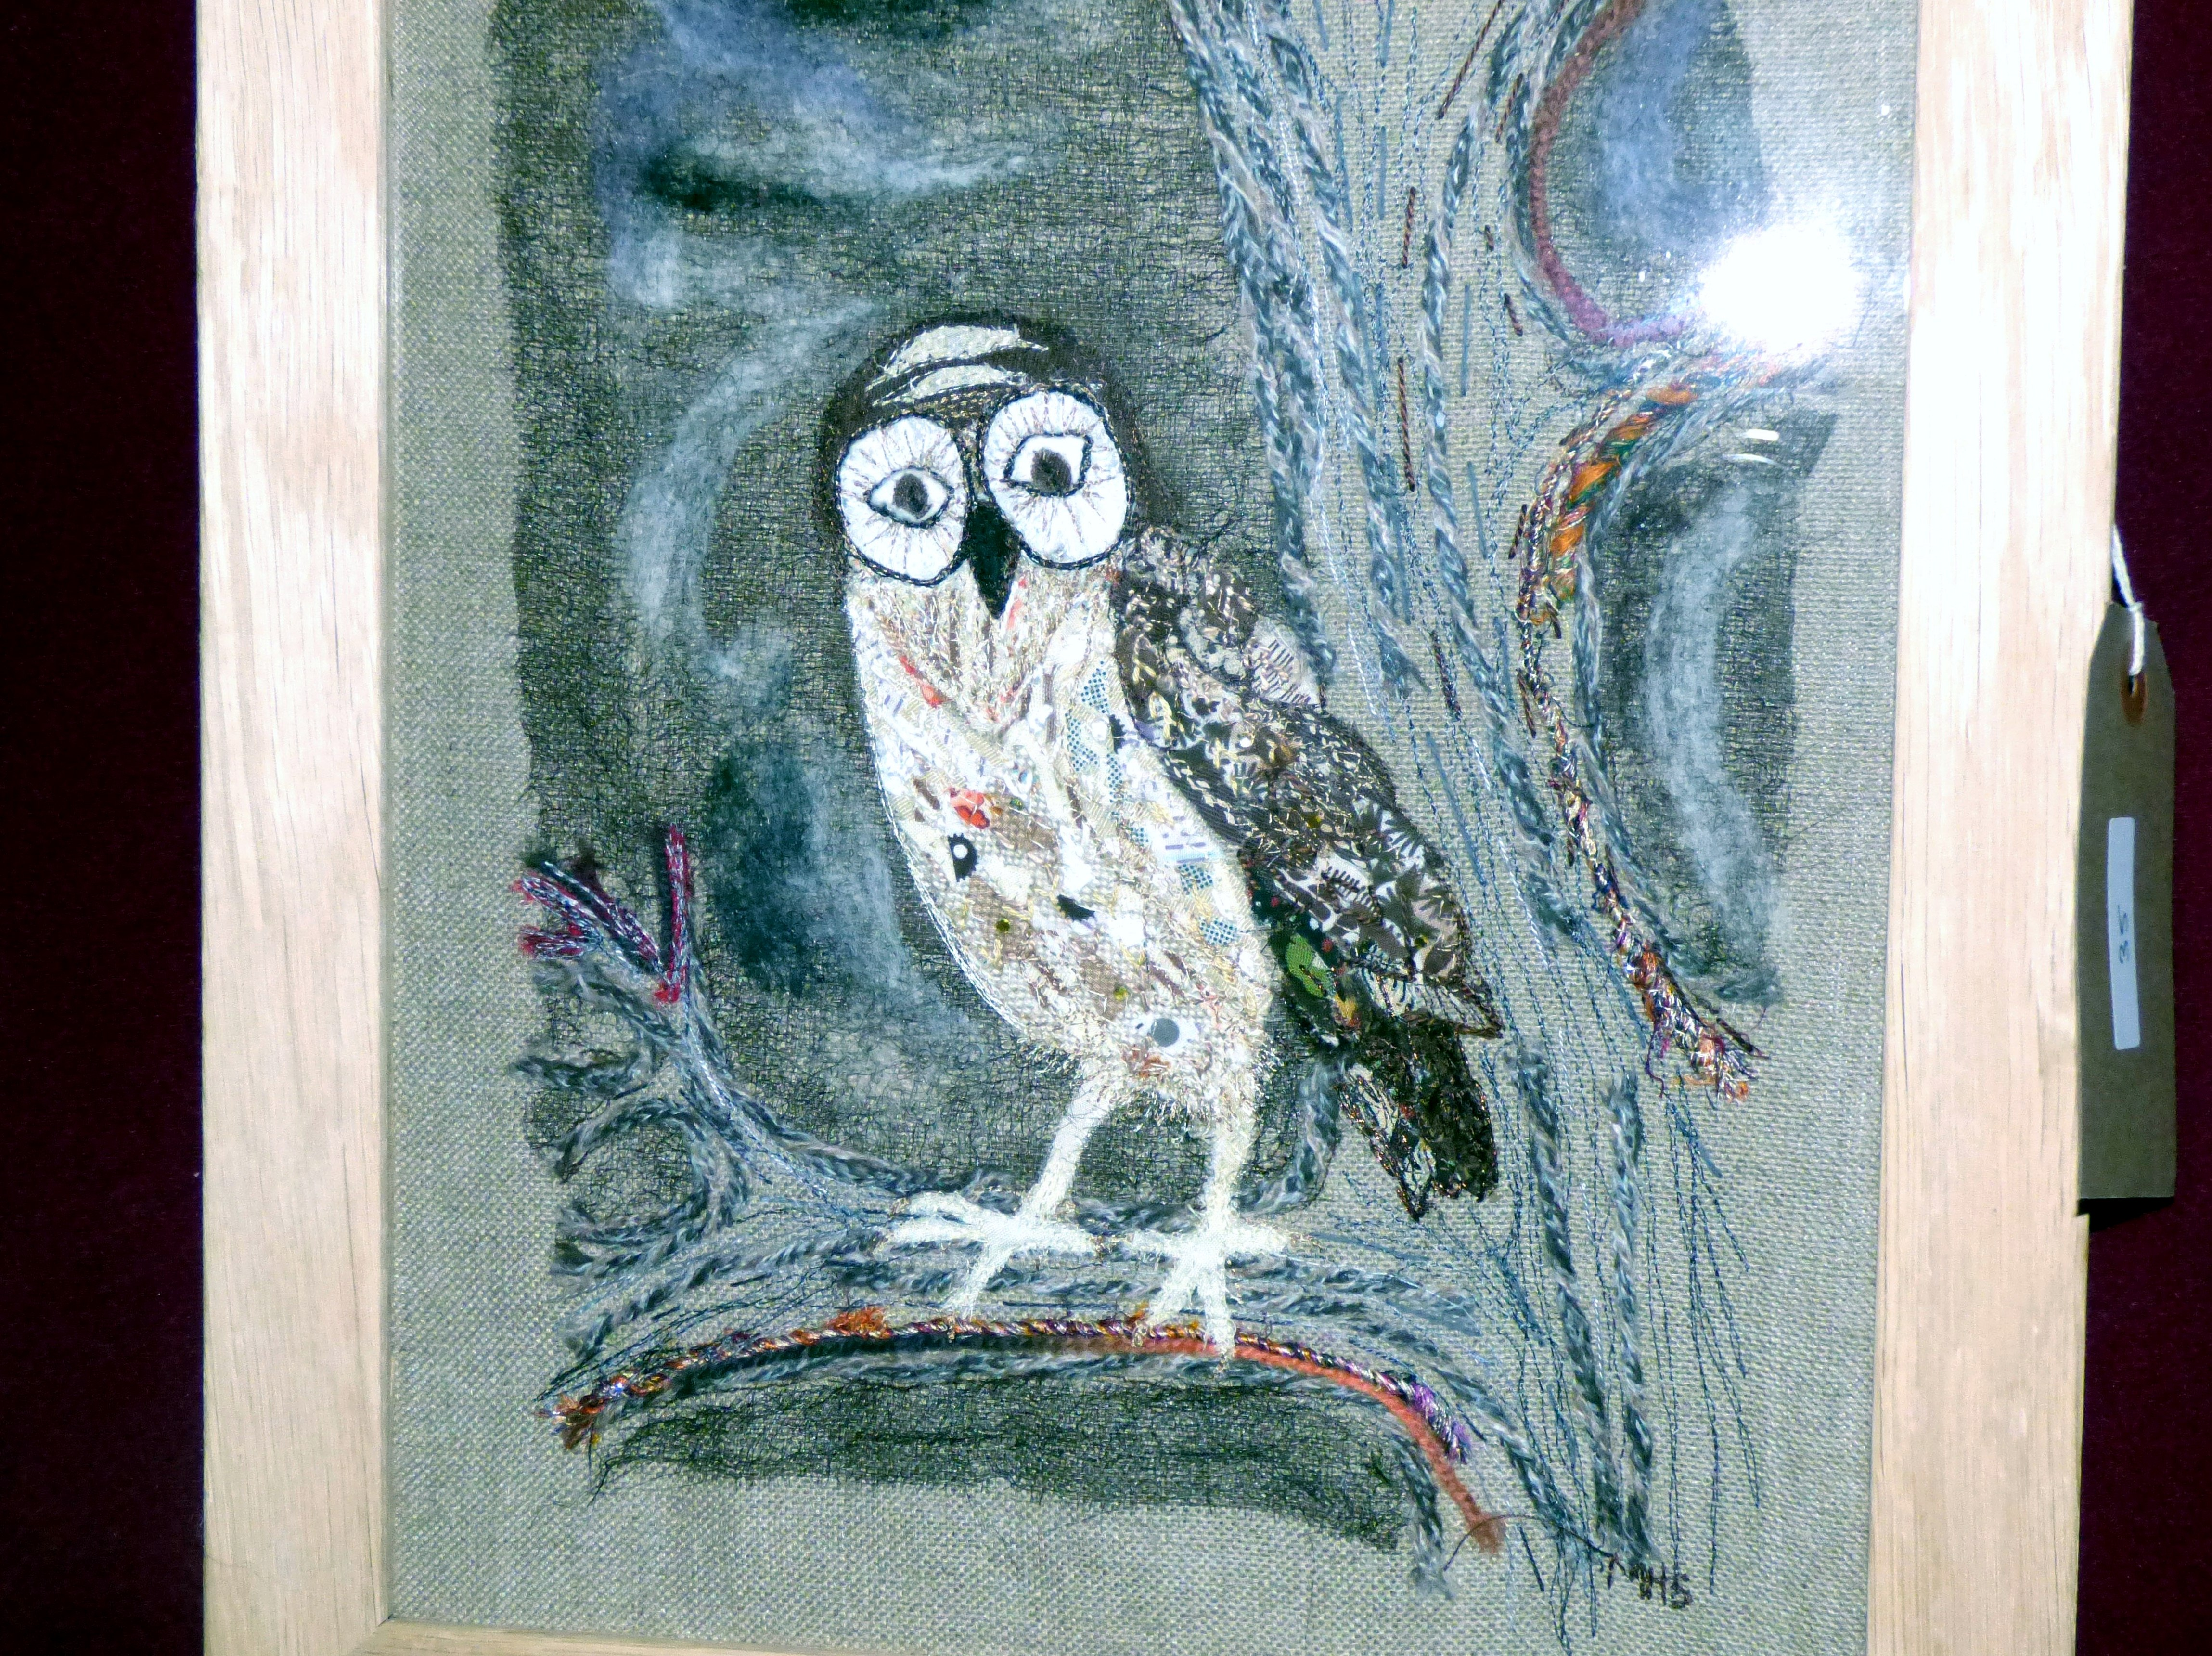 OWL FOR INDIRA by Marie Stacey at 60 Glorious Years exhibition 2016